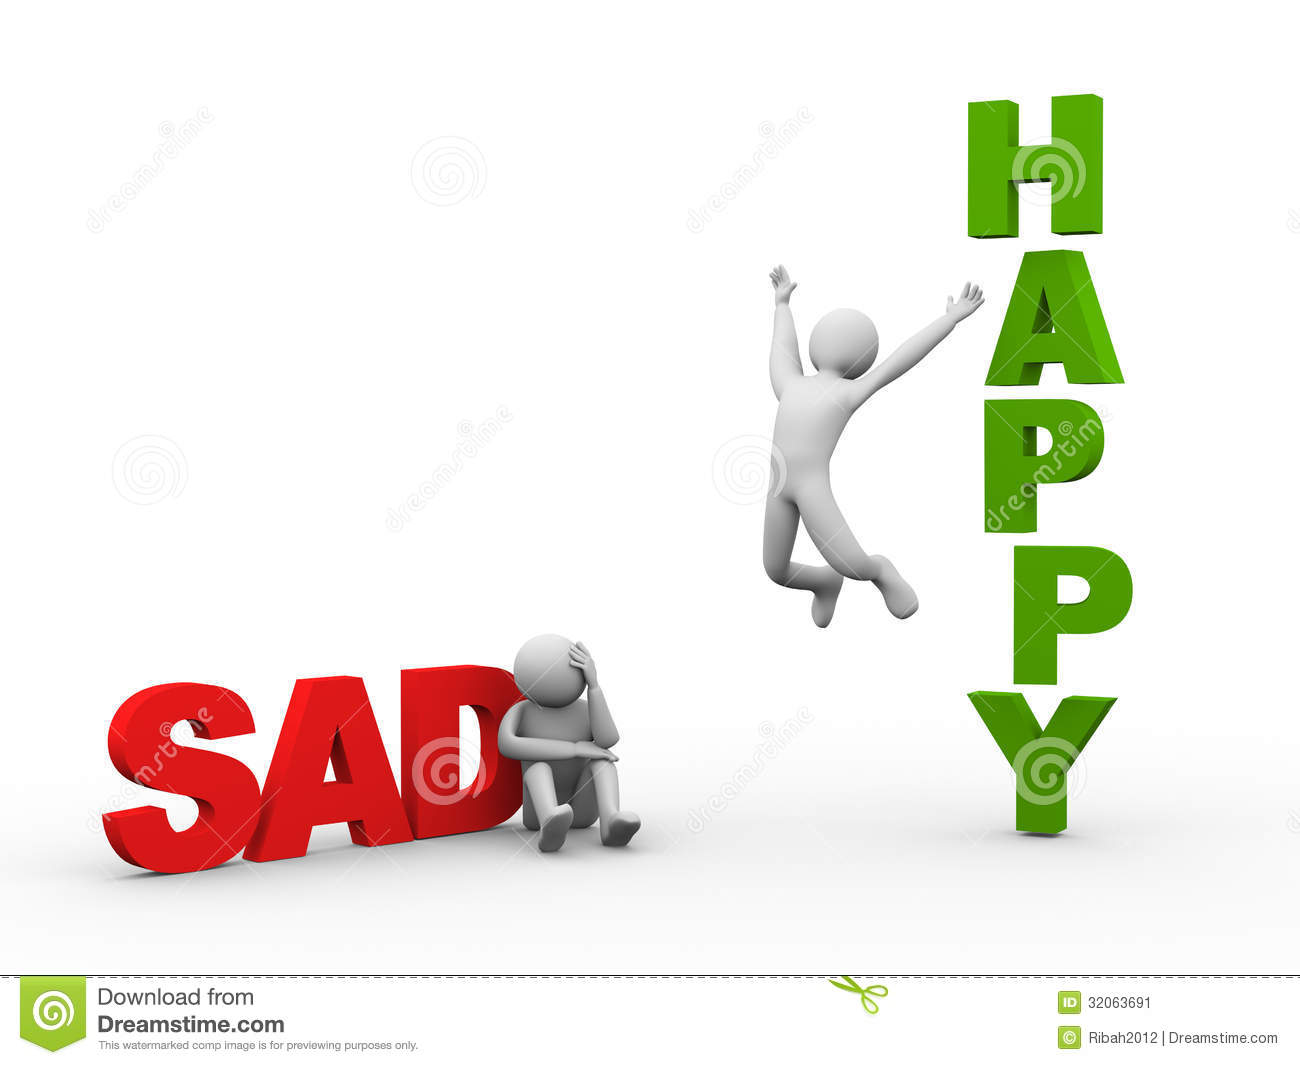 d-sad-man-happy-person-illustration-rendering-human-people-character-32063691.jpg